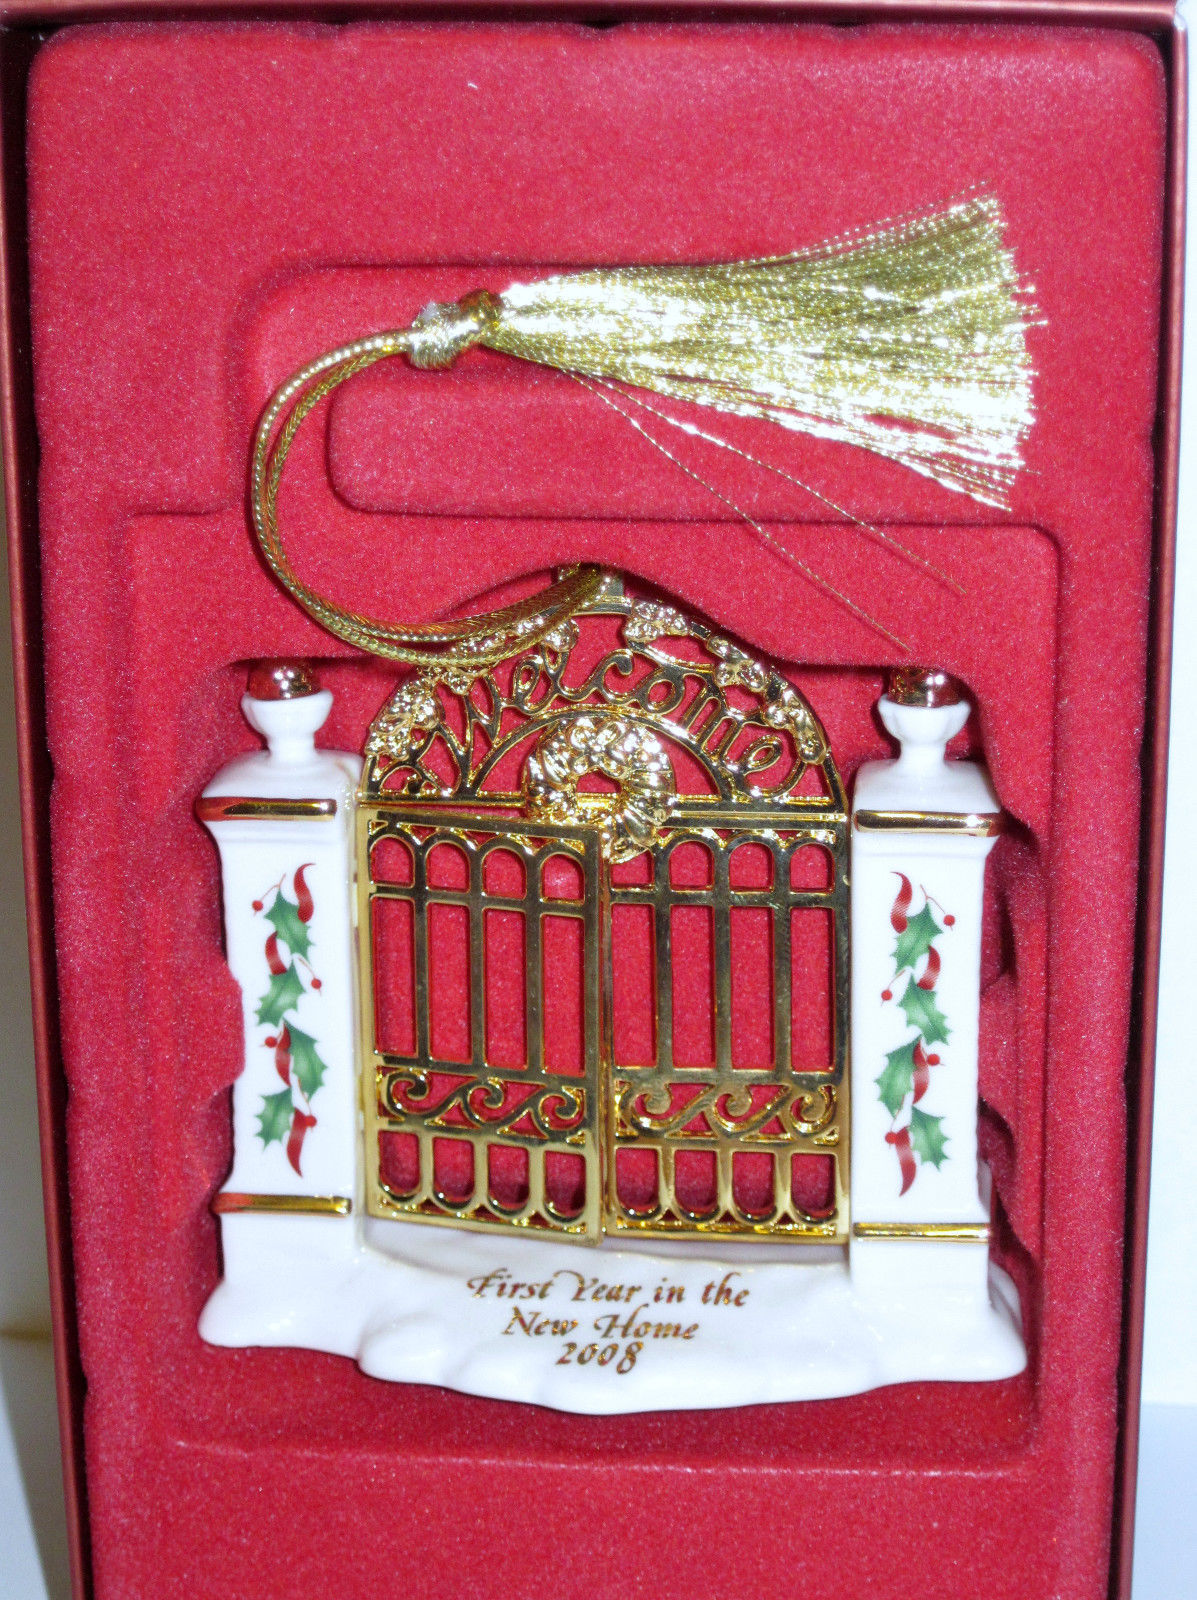 NIB Lenox 2008 Annual First Year in New Home Christmas Ornament Welcome Gate